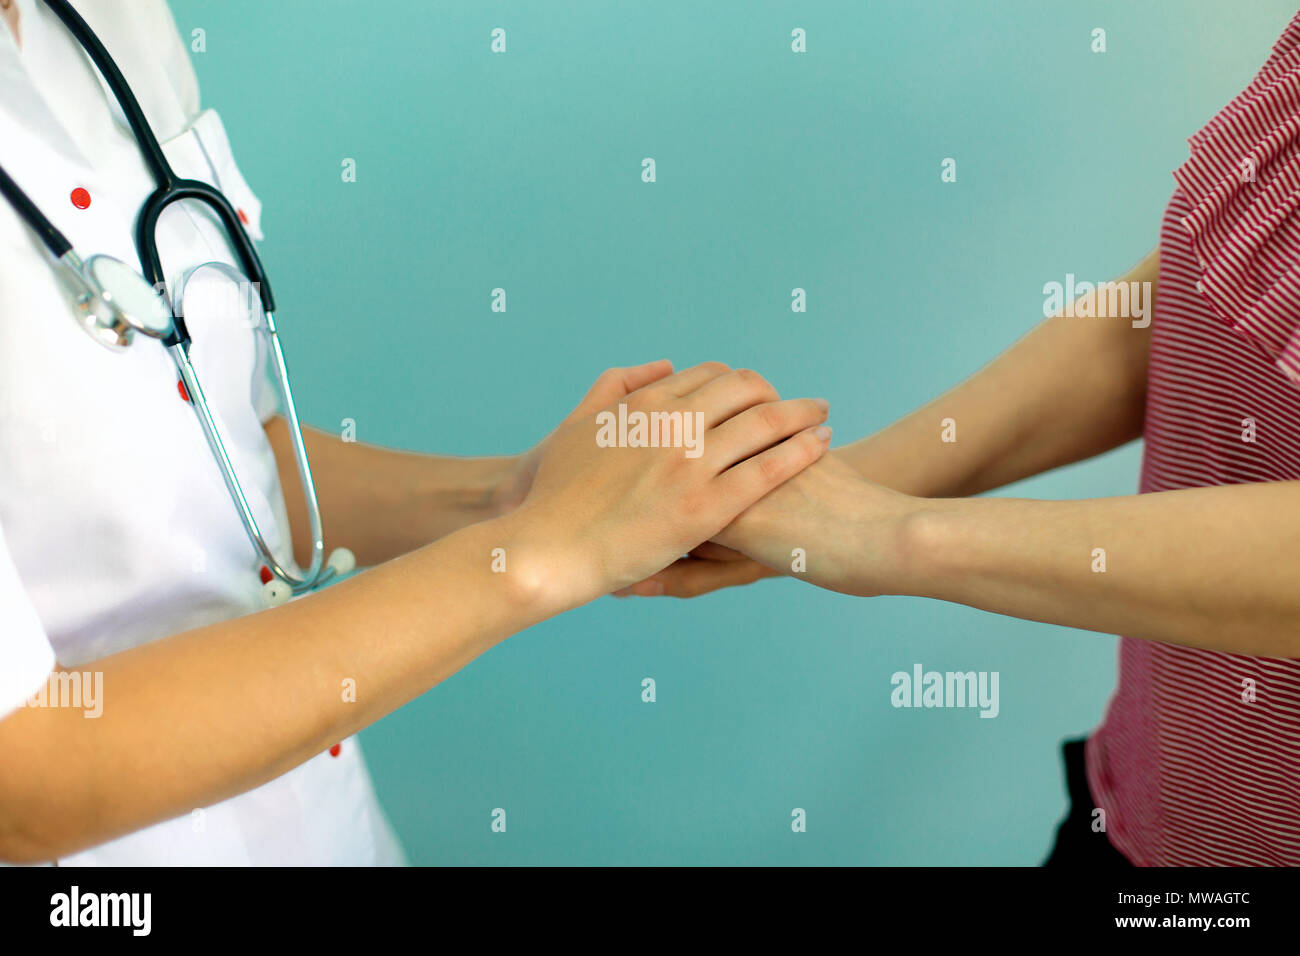 Female doctor's hands holding patient's hand for encouragement and empathy. Partnership, trust and medical ethics concept. - Stock Image